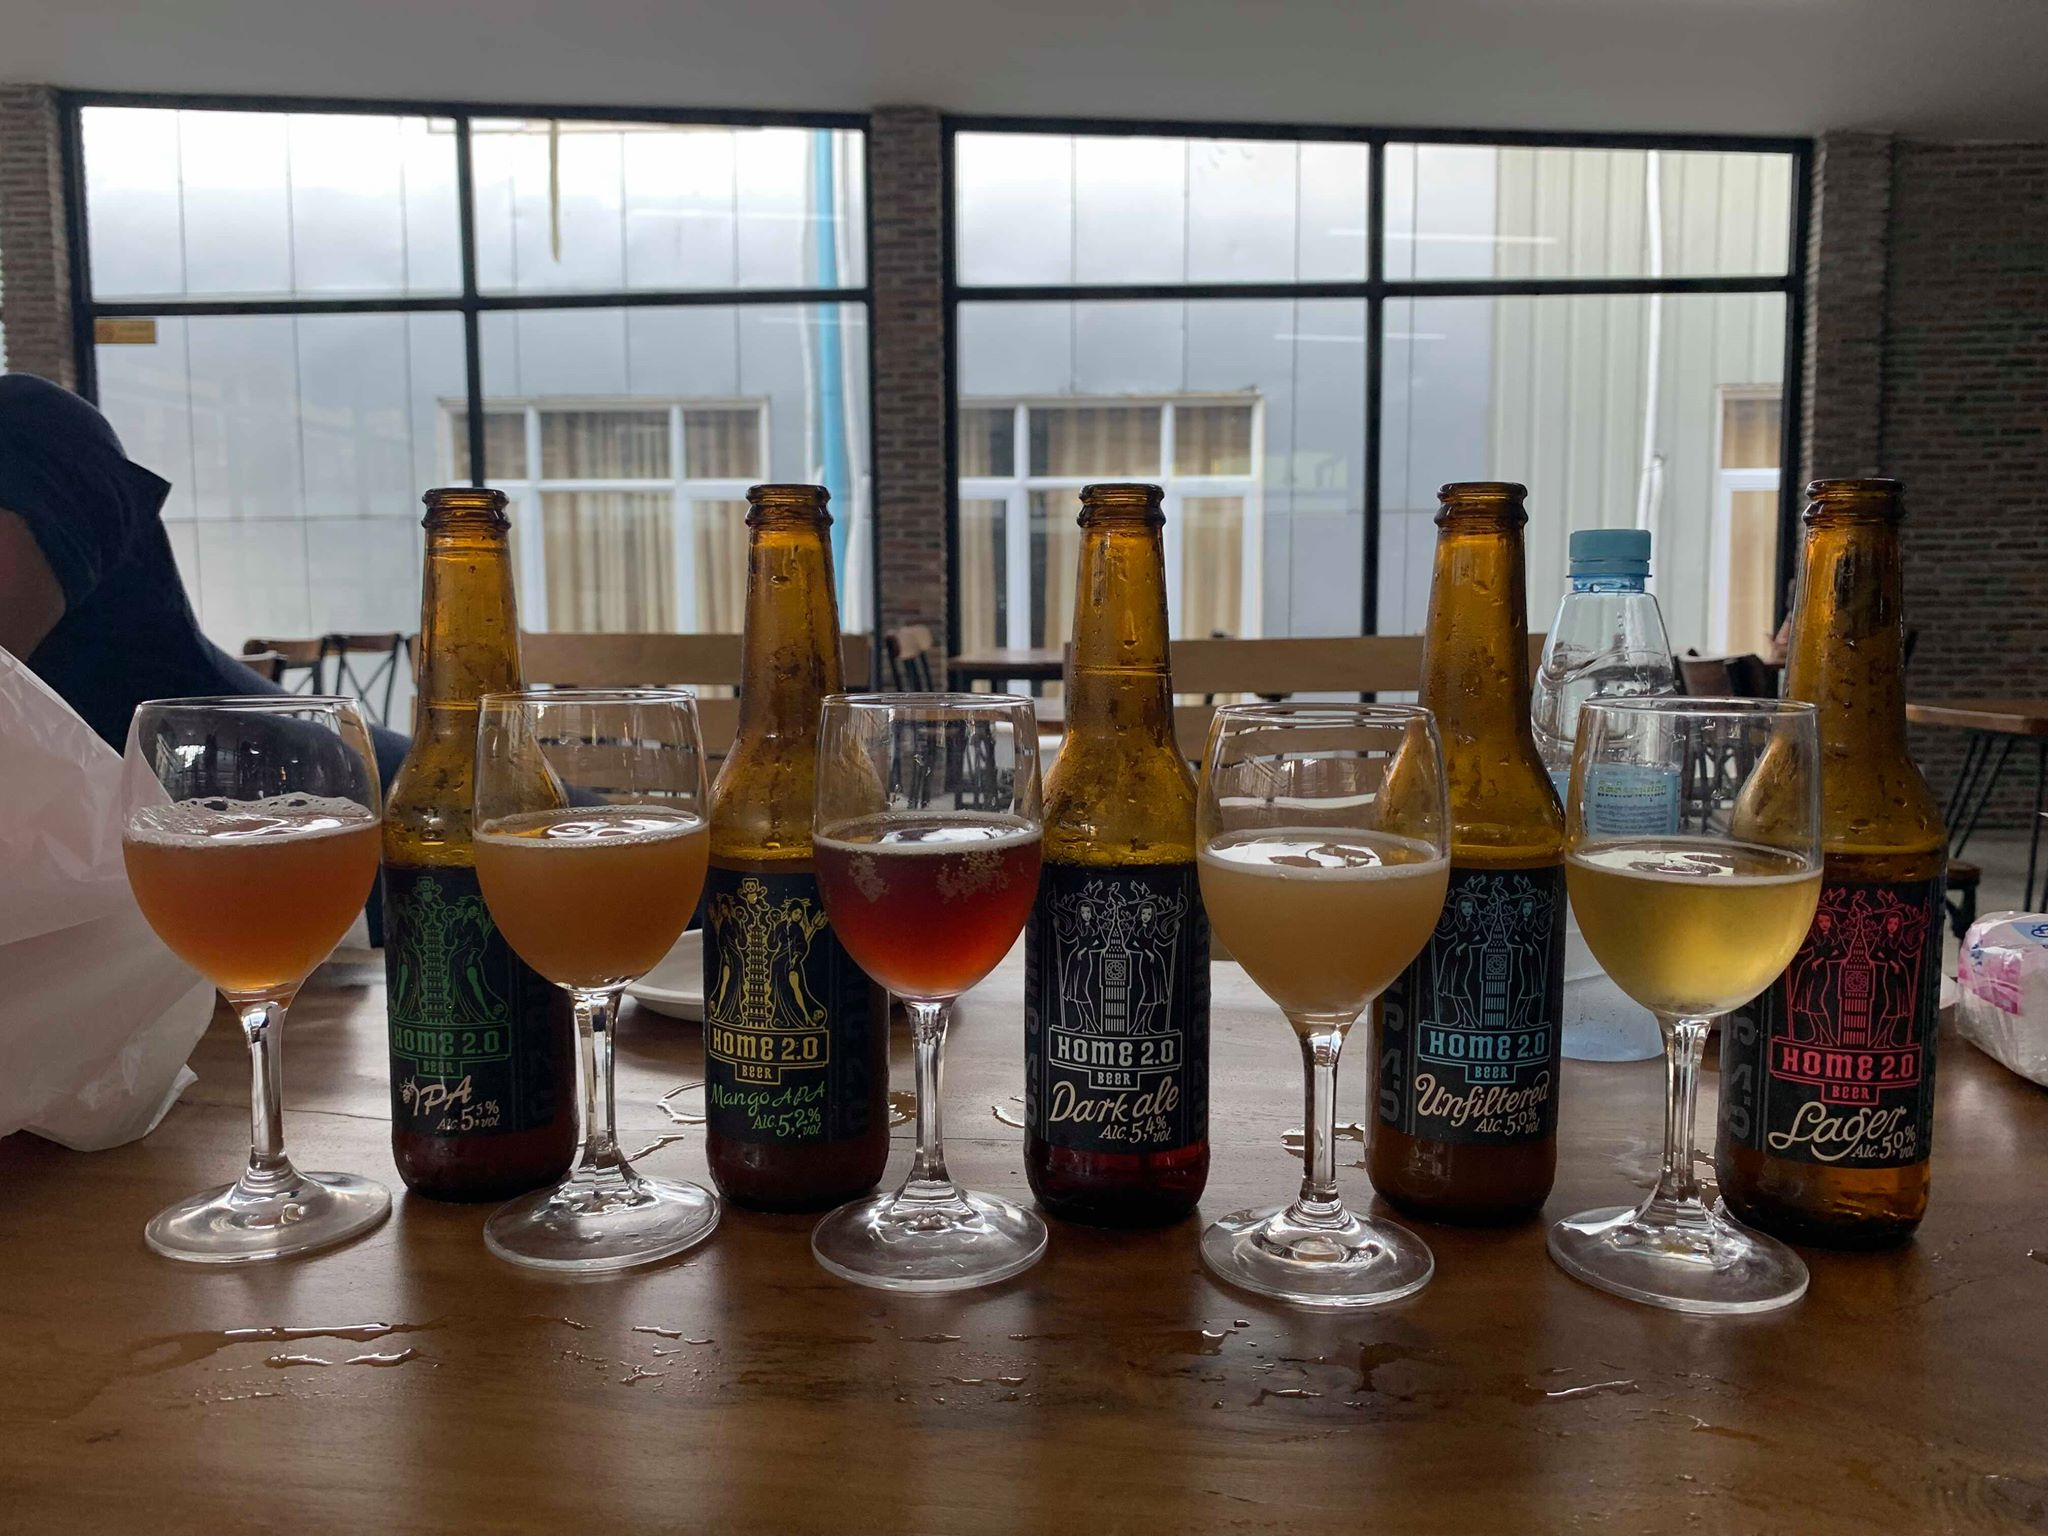 Home 2.0 Craft Beer in Phnom Penh